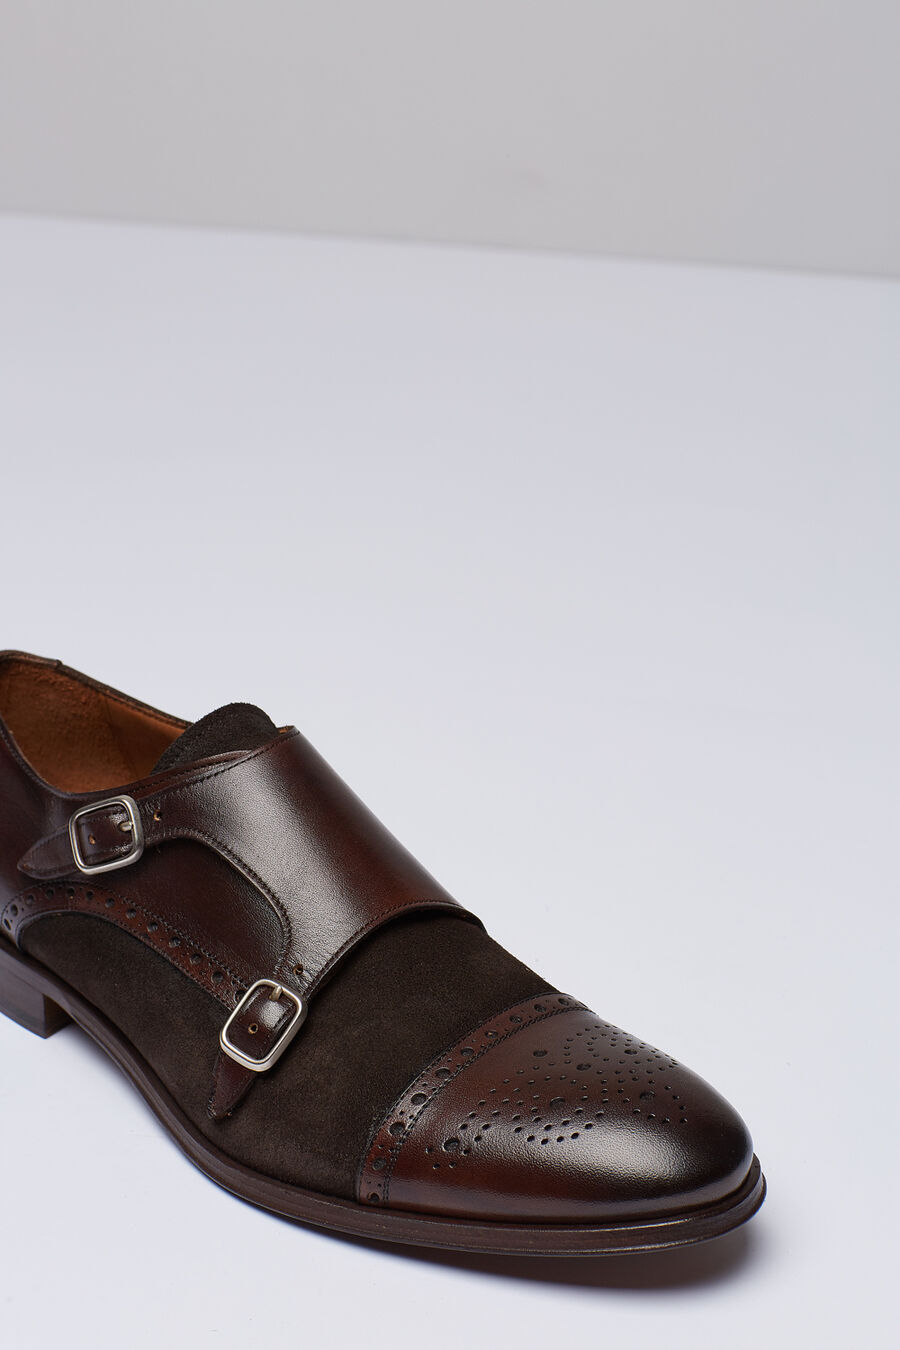 2 buckle shoes